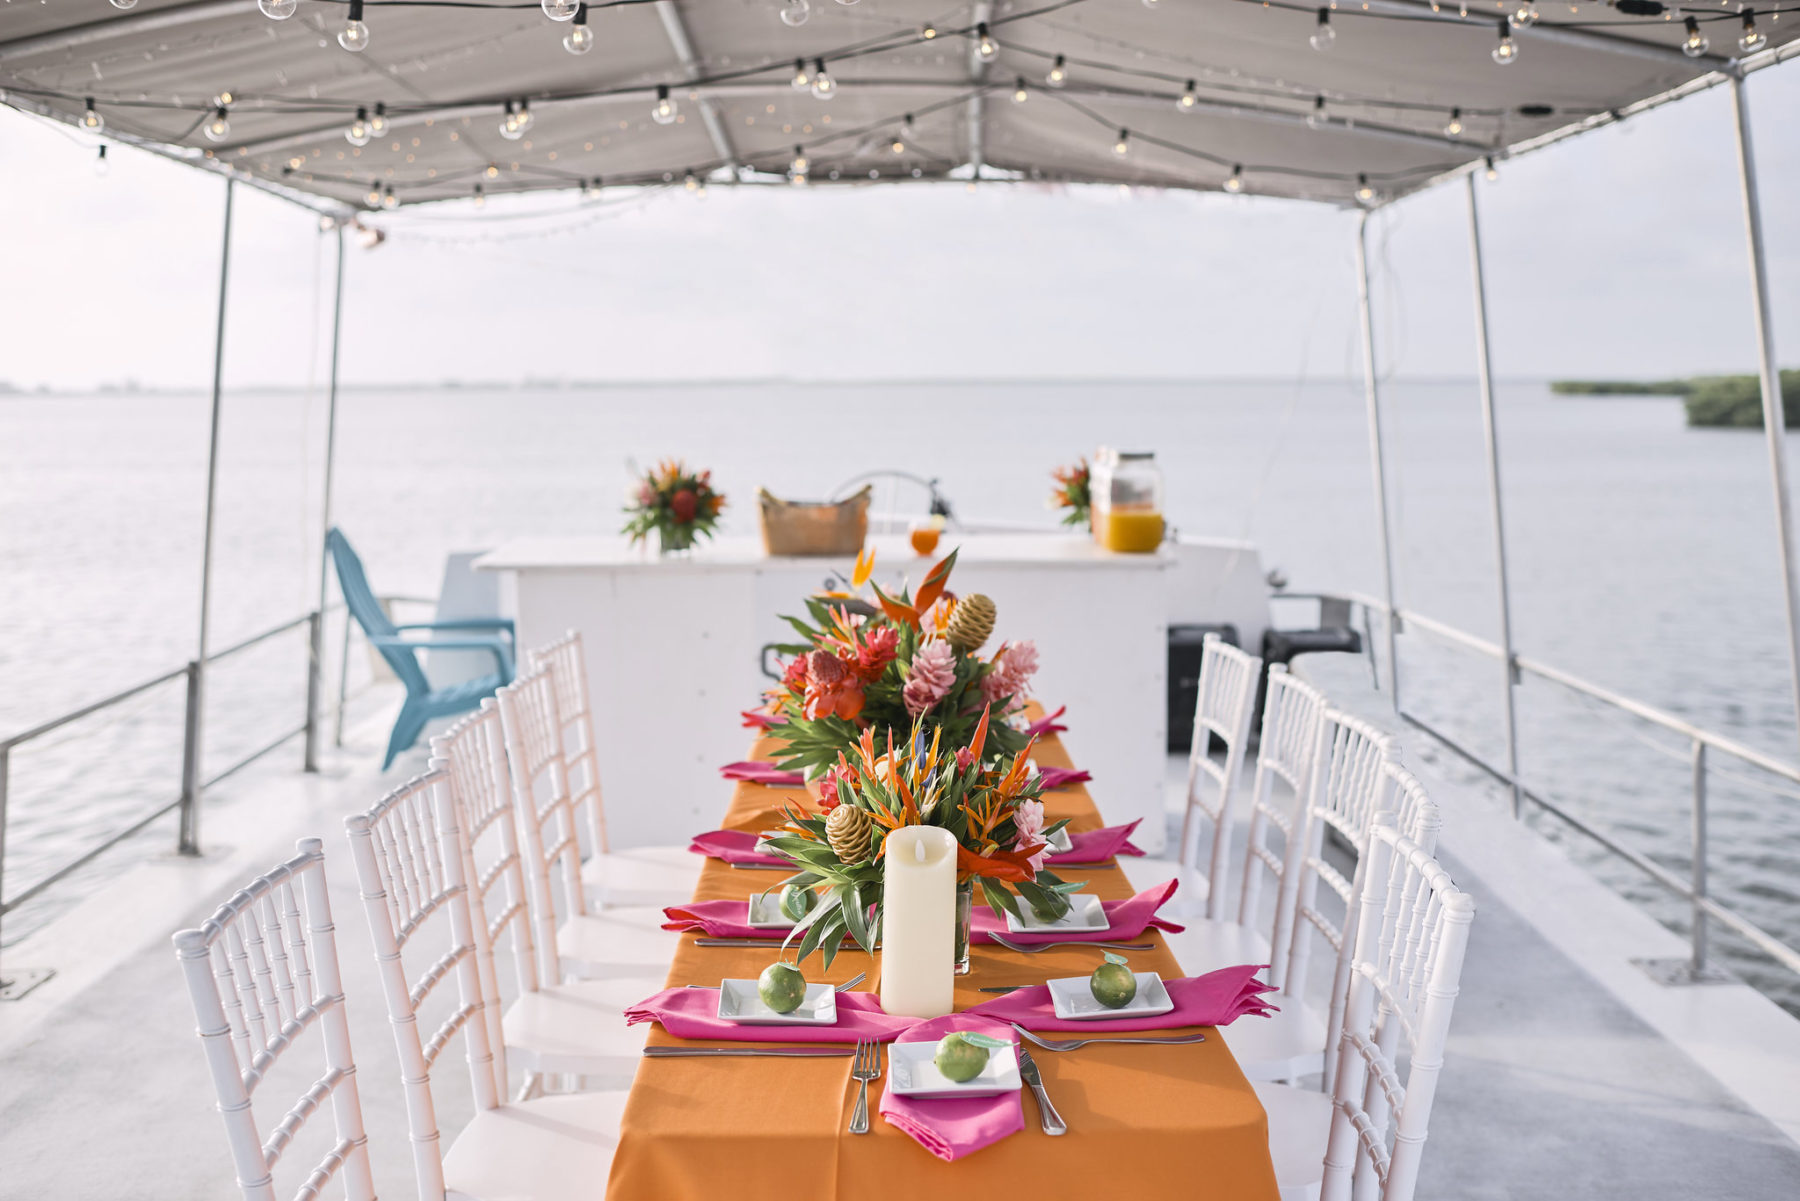 Table Arrangements, Sunset cruise Birthday celebration at Ambergris Caye, Belize